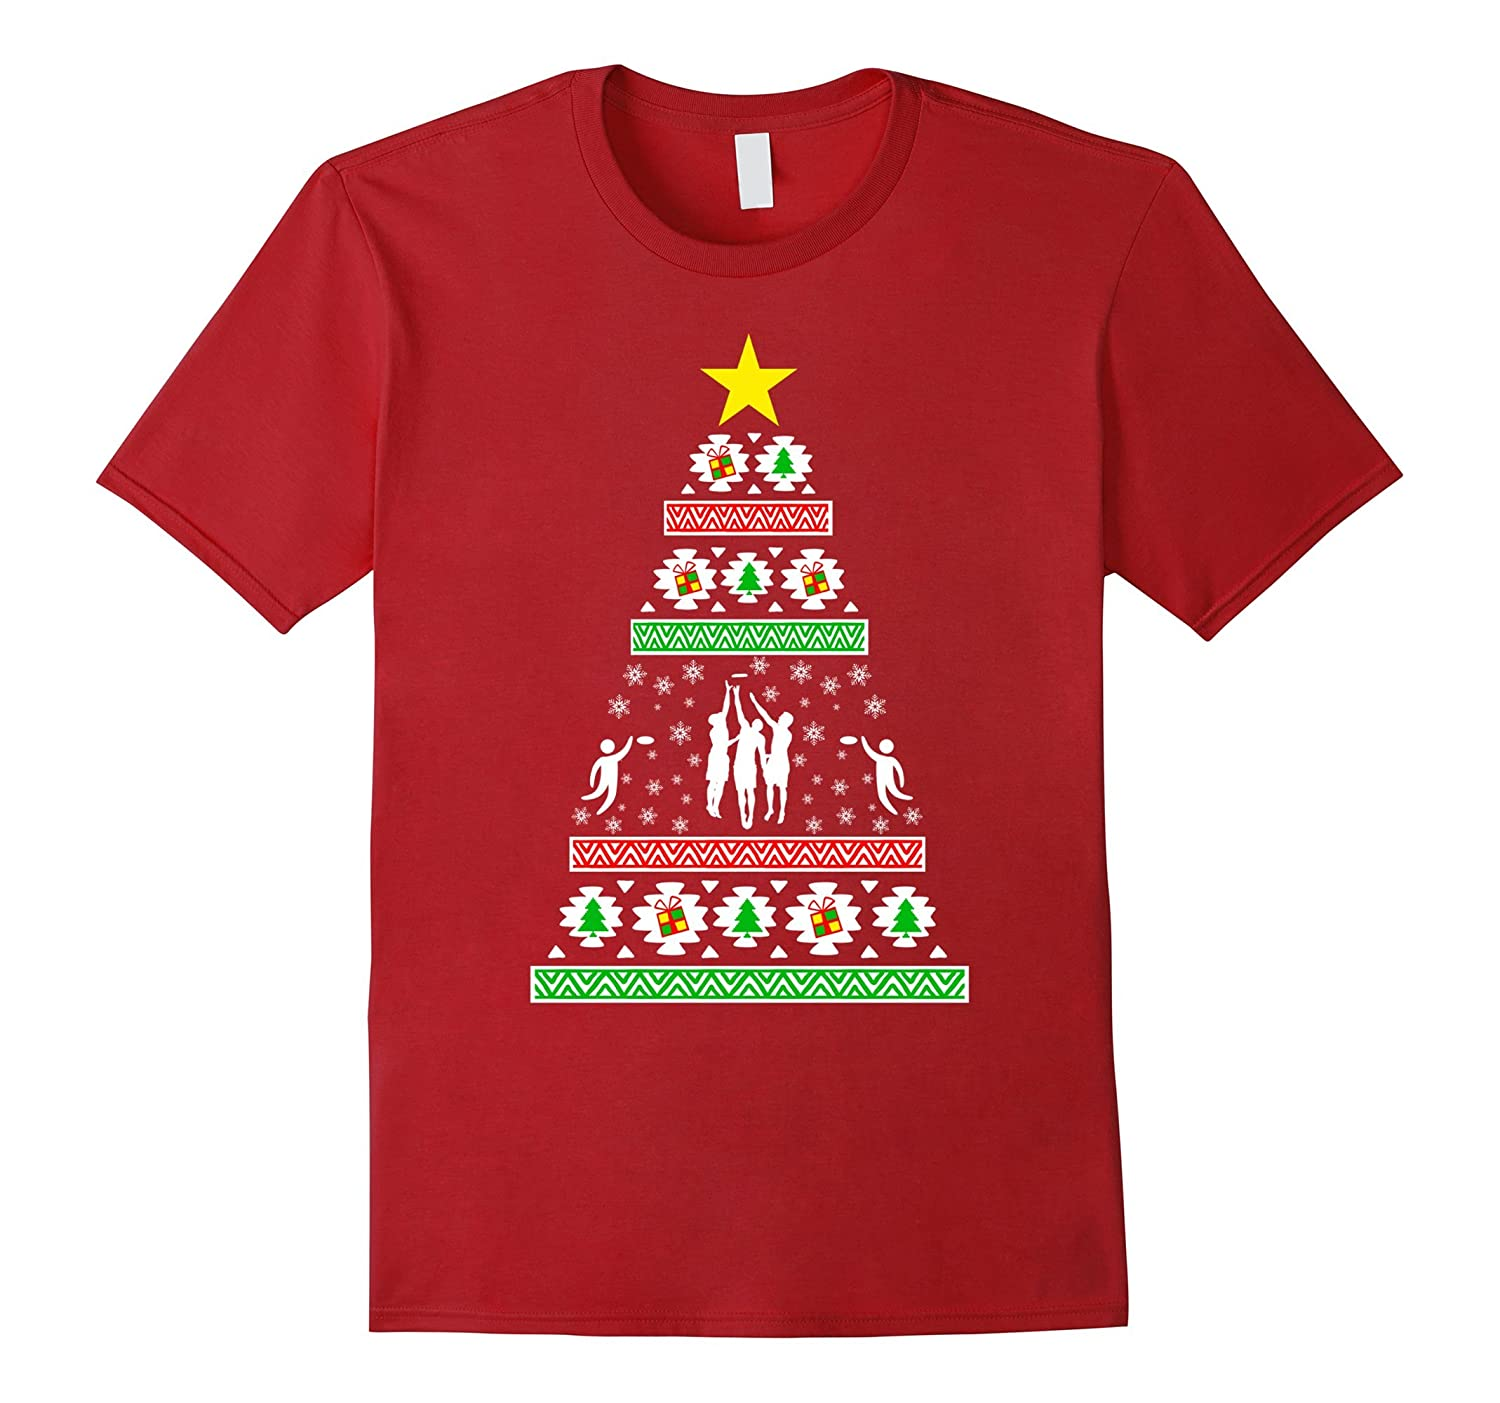 Ultimate Frisbee gifts idea ugly christmas sweater look-TD – theteejob